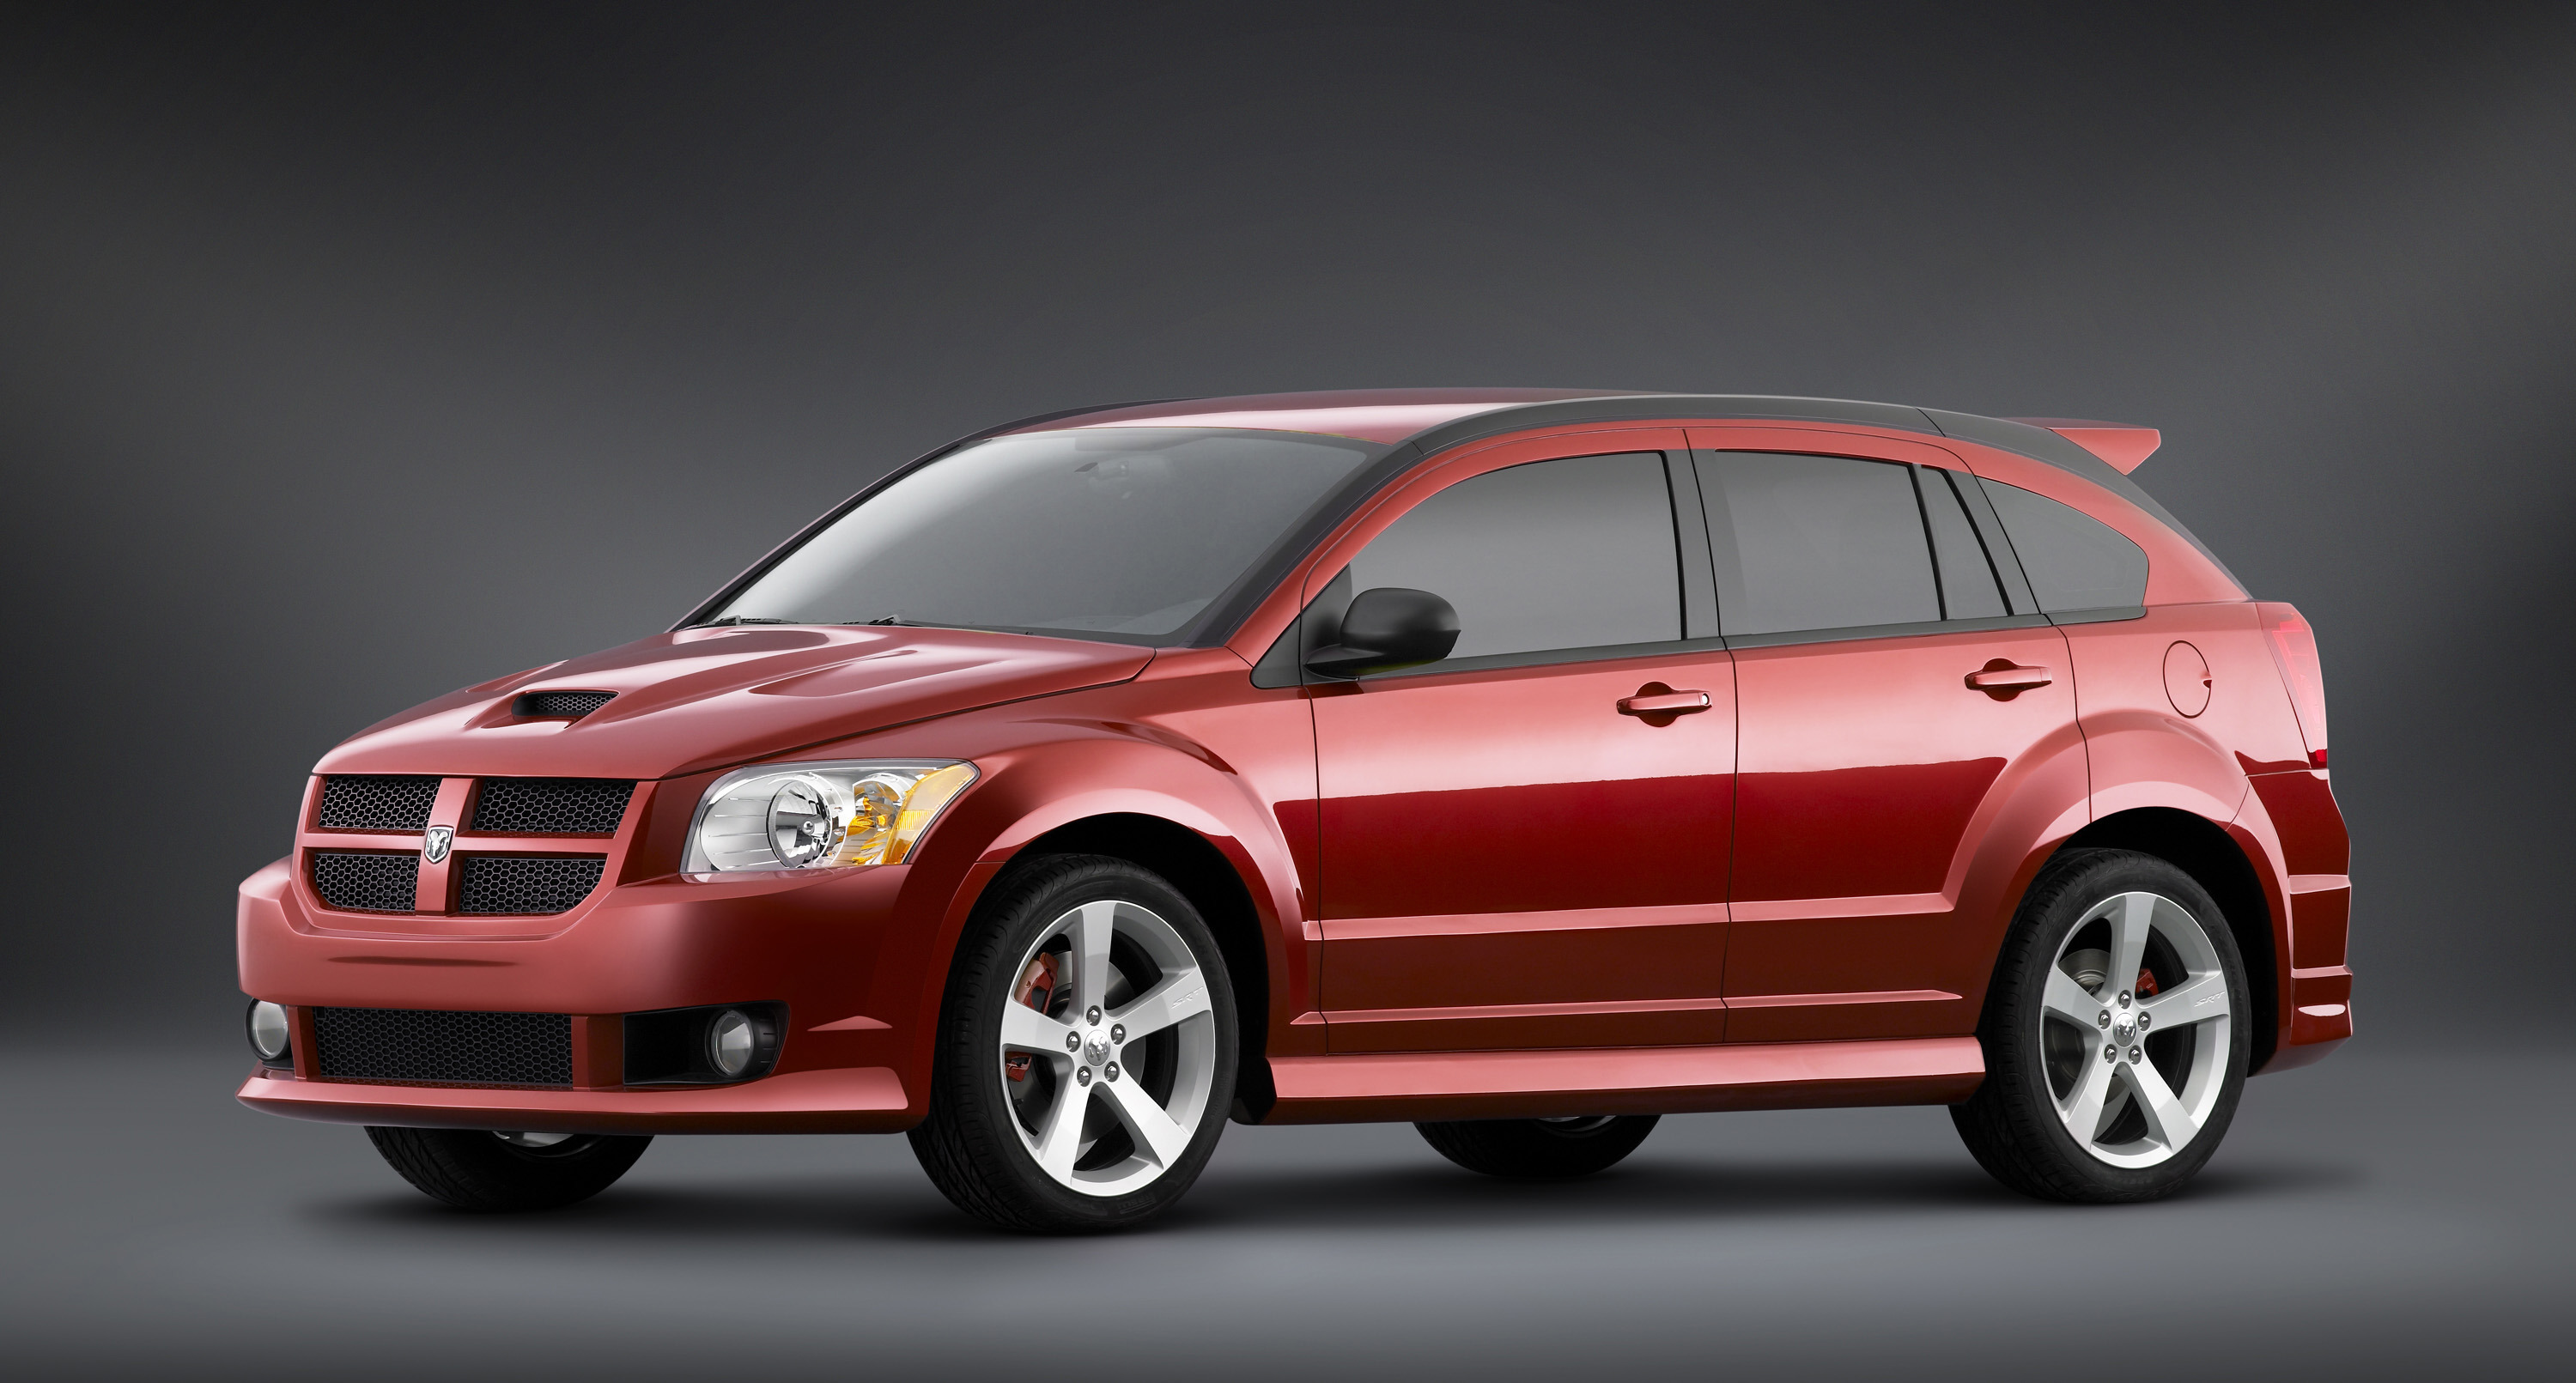 2007 Dodge Caliber SRT4 | Top Speed. »